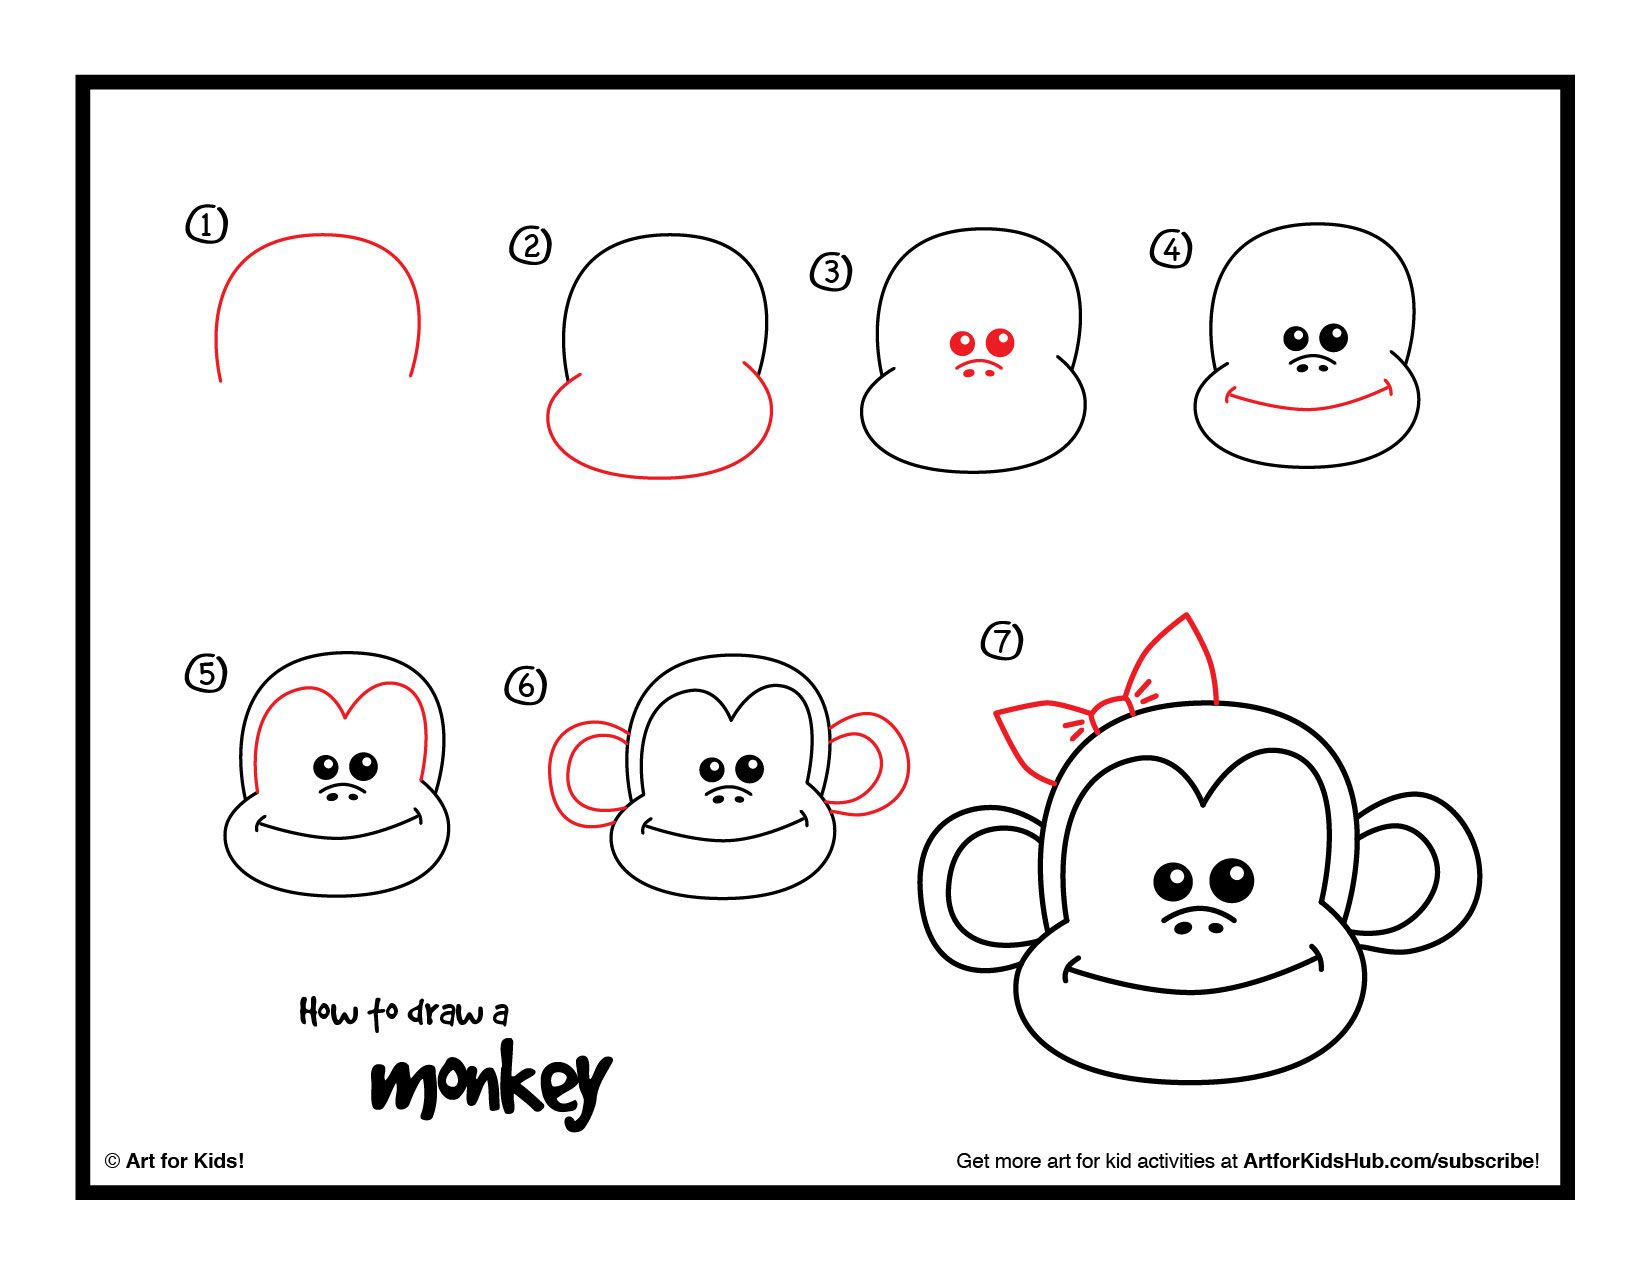 How To Draw A Monkey - Art For Kids Hub - | Free printable ...